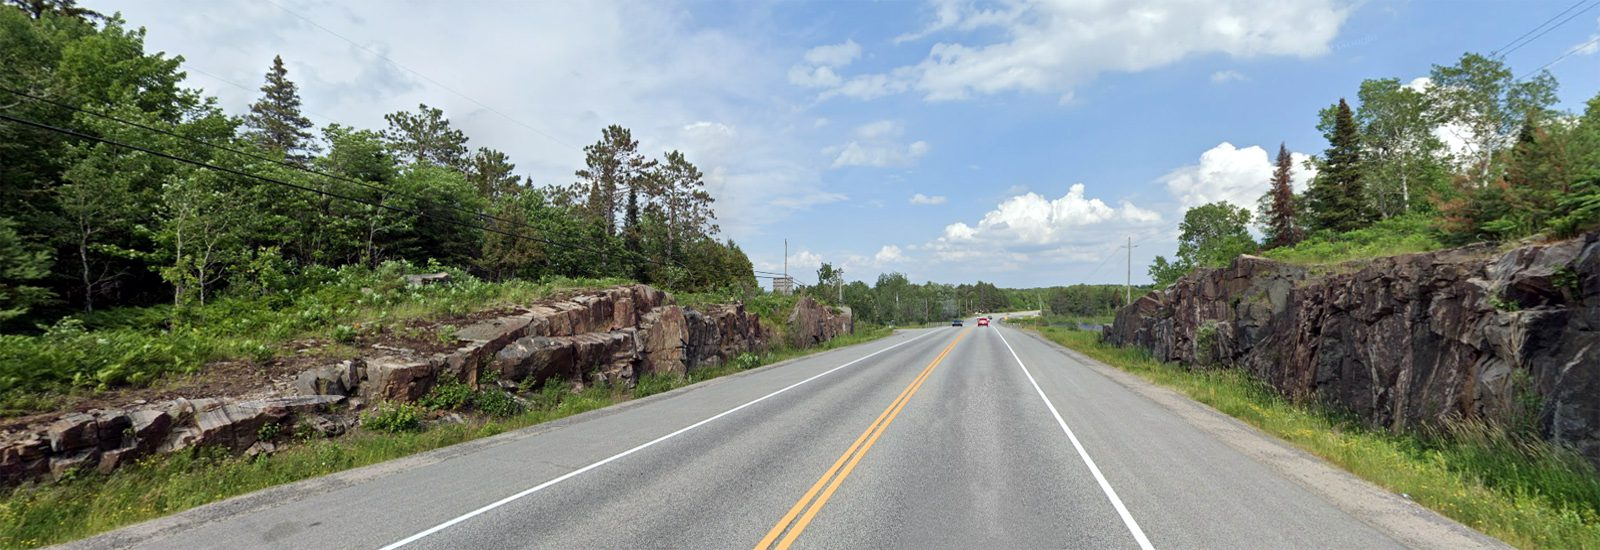 Highway 17 Rock Cuts east of North Bay, ON